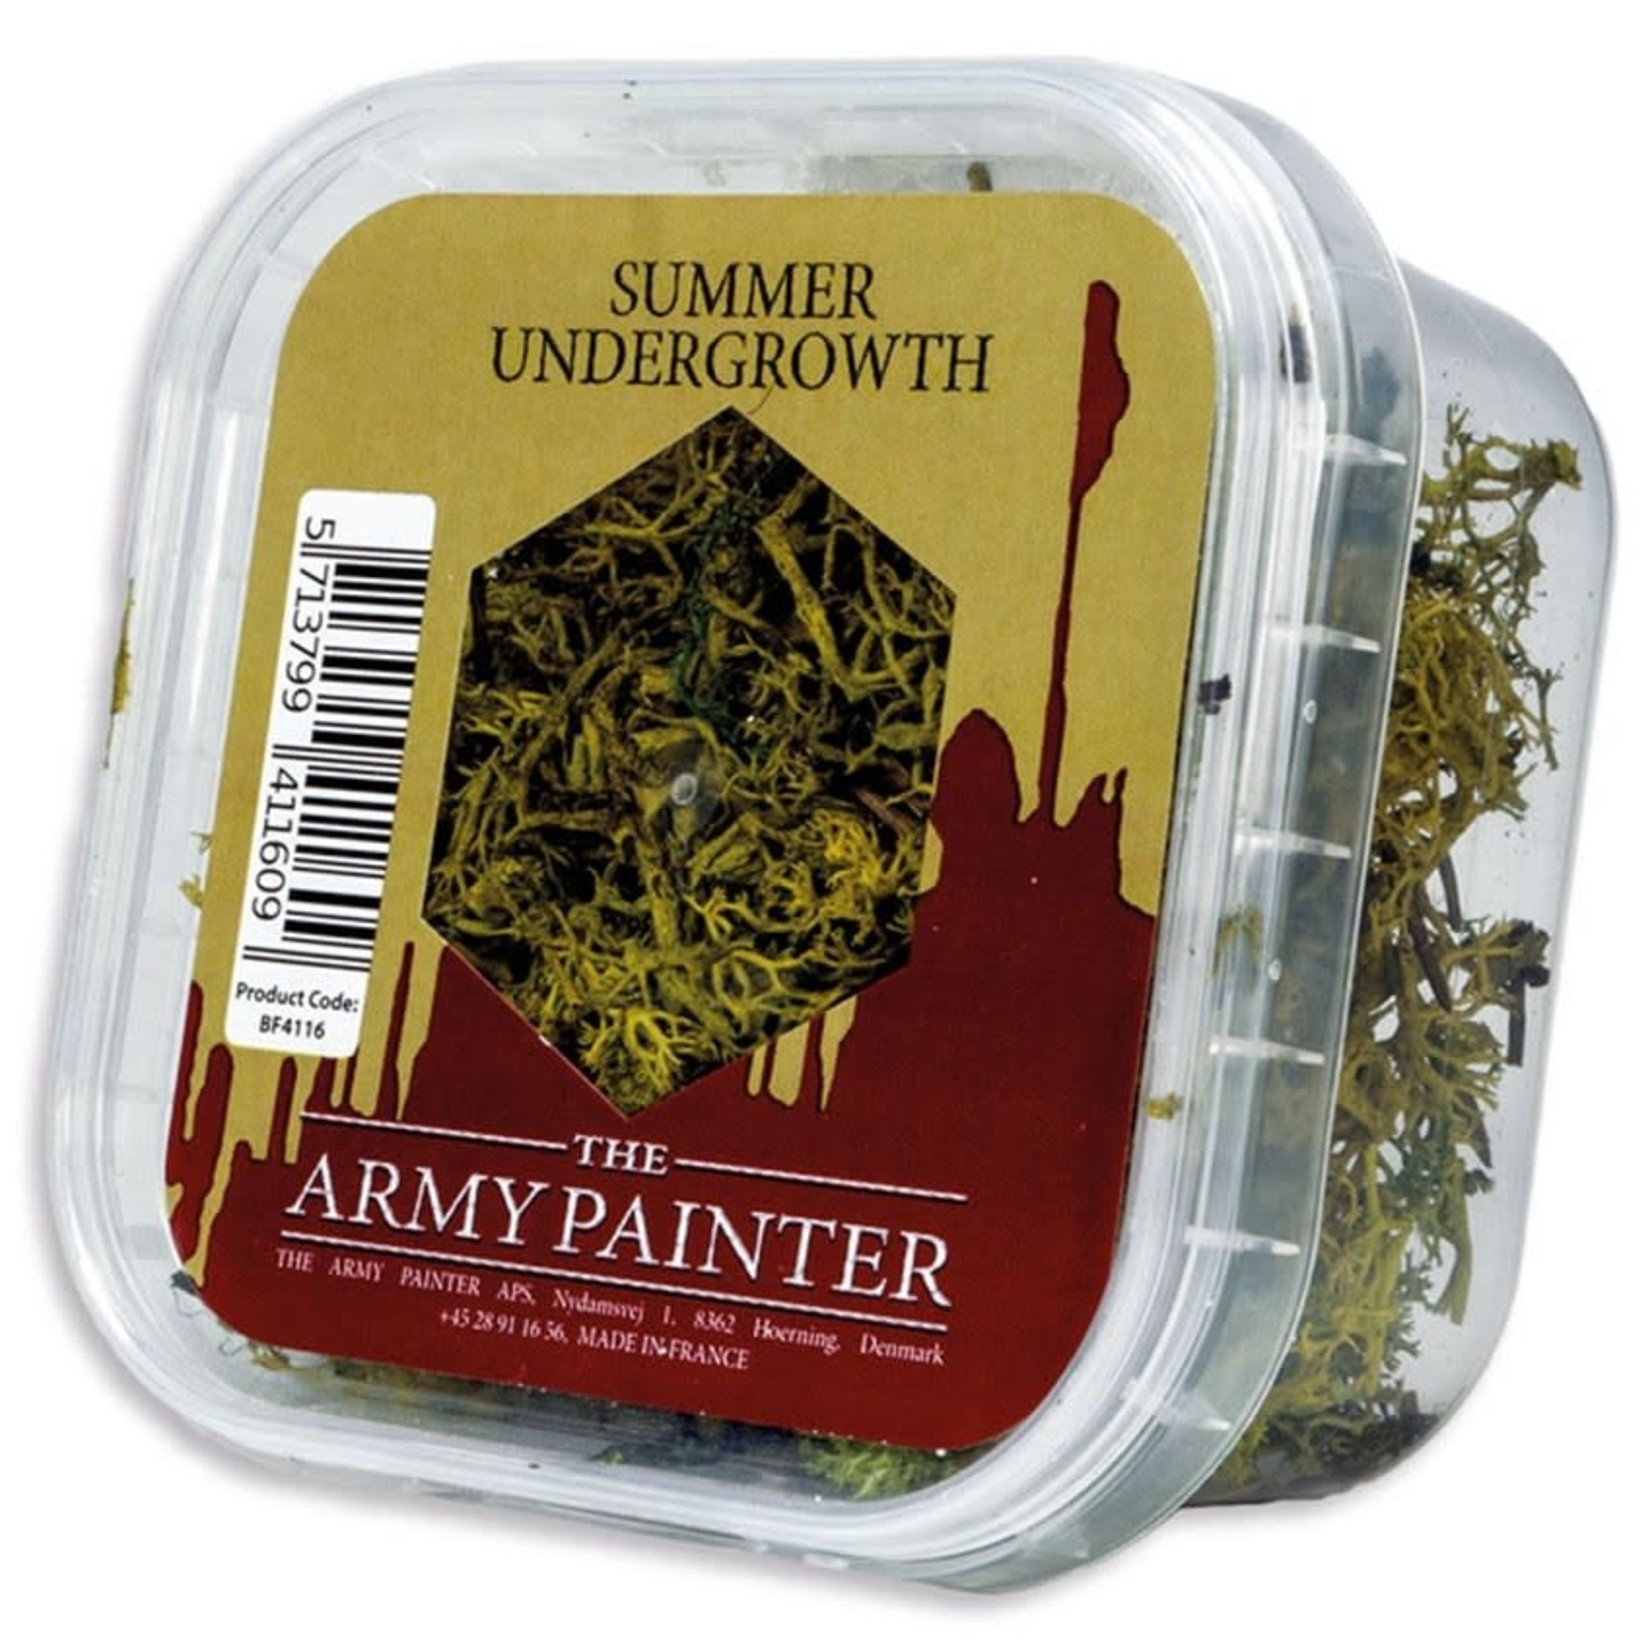 The Army Painter The Army Painter: Basing Summer Undergrowth